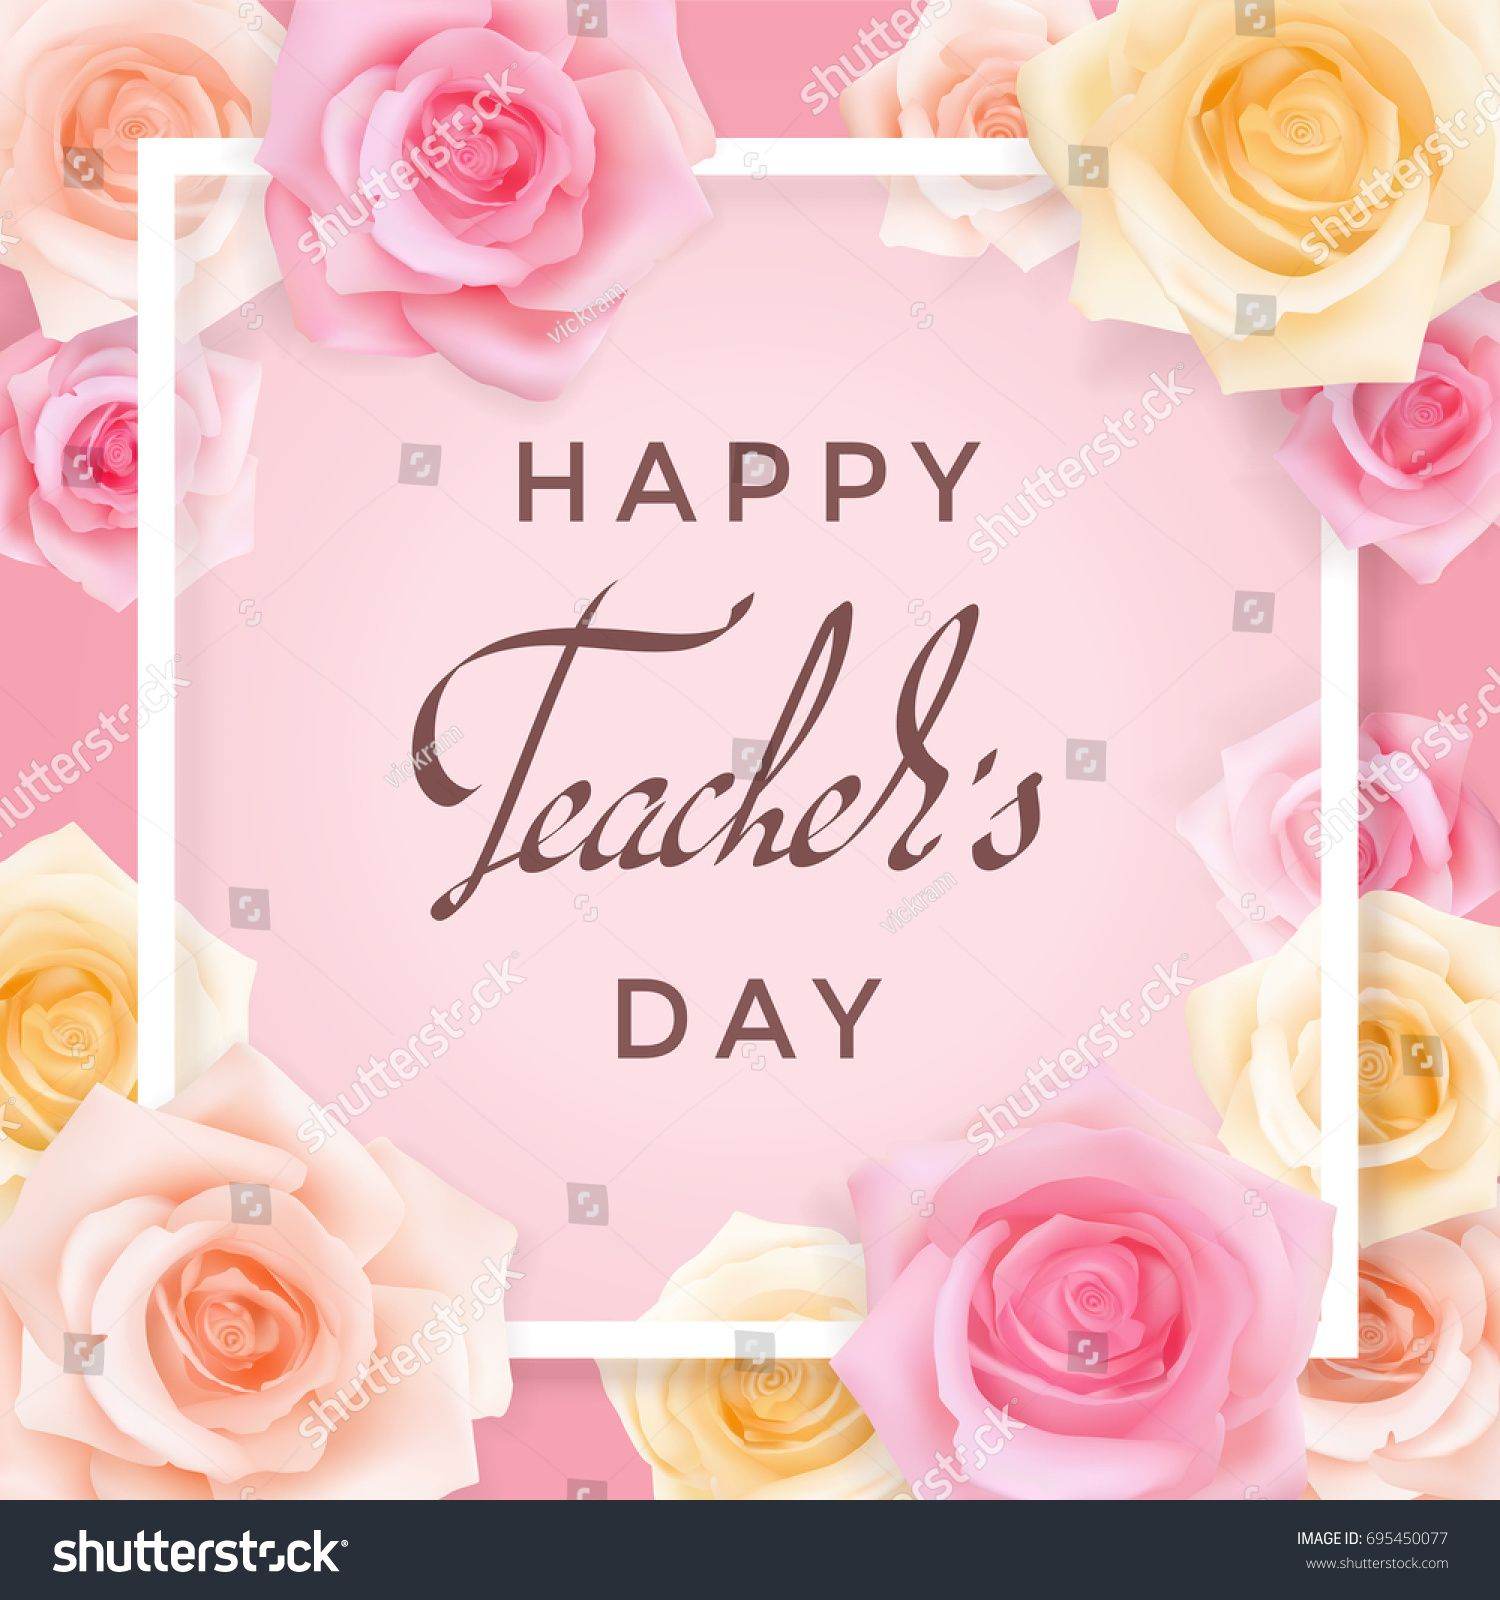 Happy Teachers Day Greeting Card Transparent Banner Templates With Congratulations And Roses Happy Teachers Day Card Teachers Day Greetings Teachers Day Card